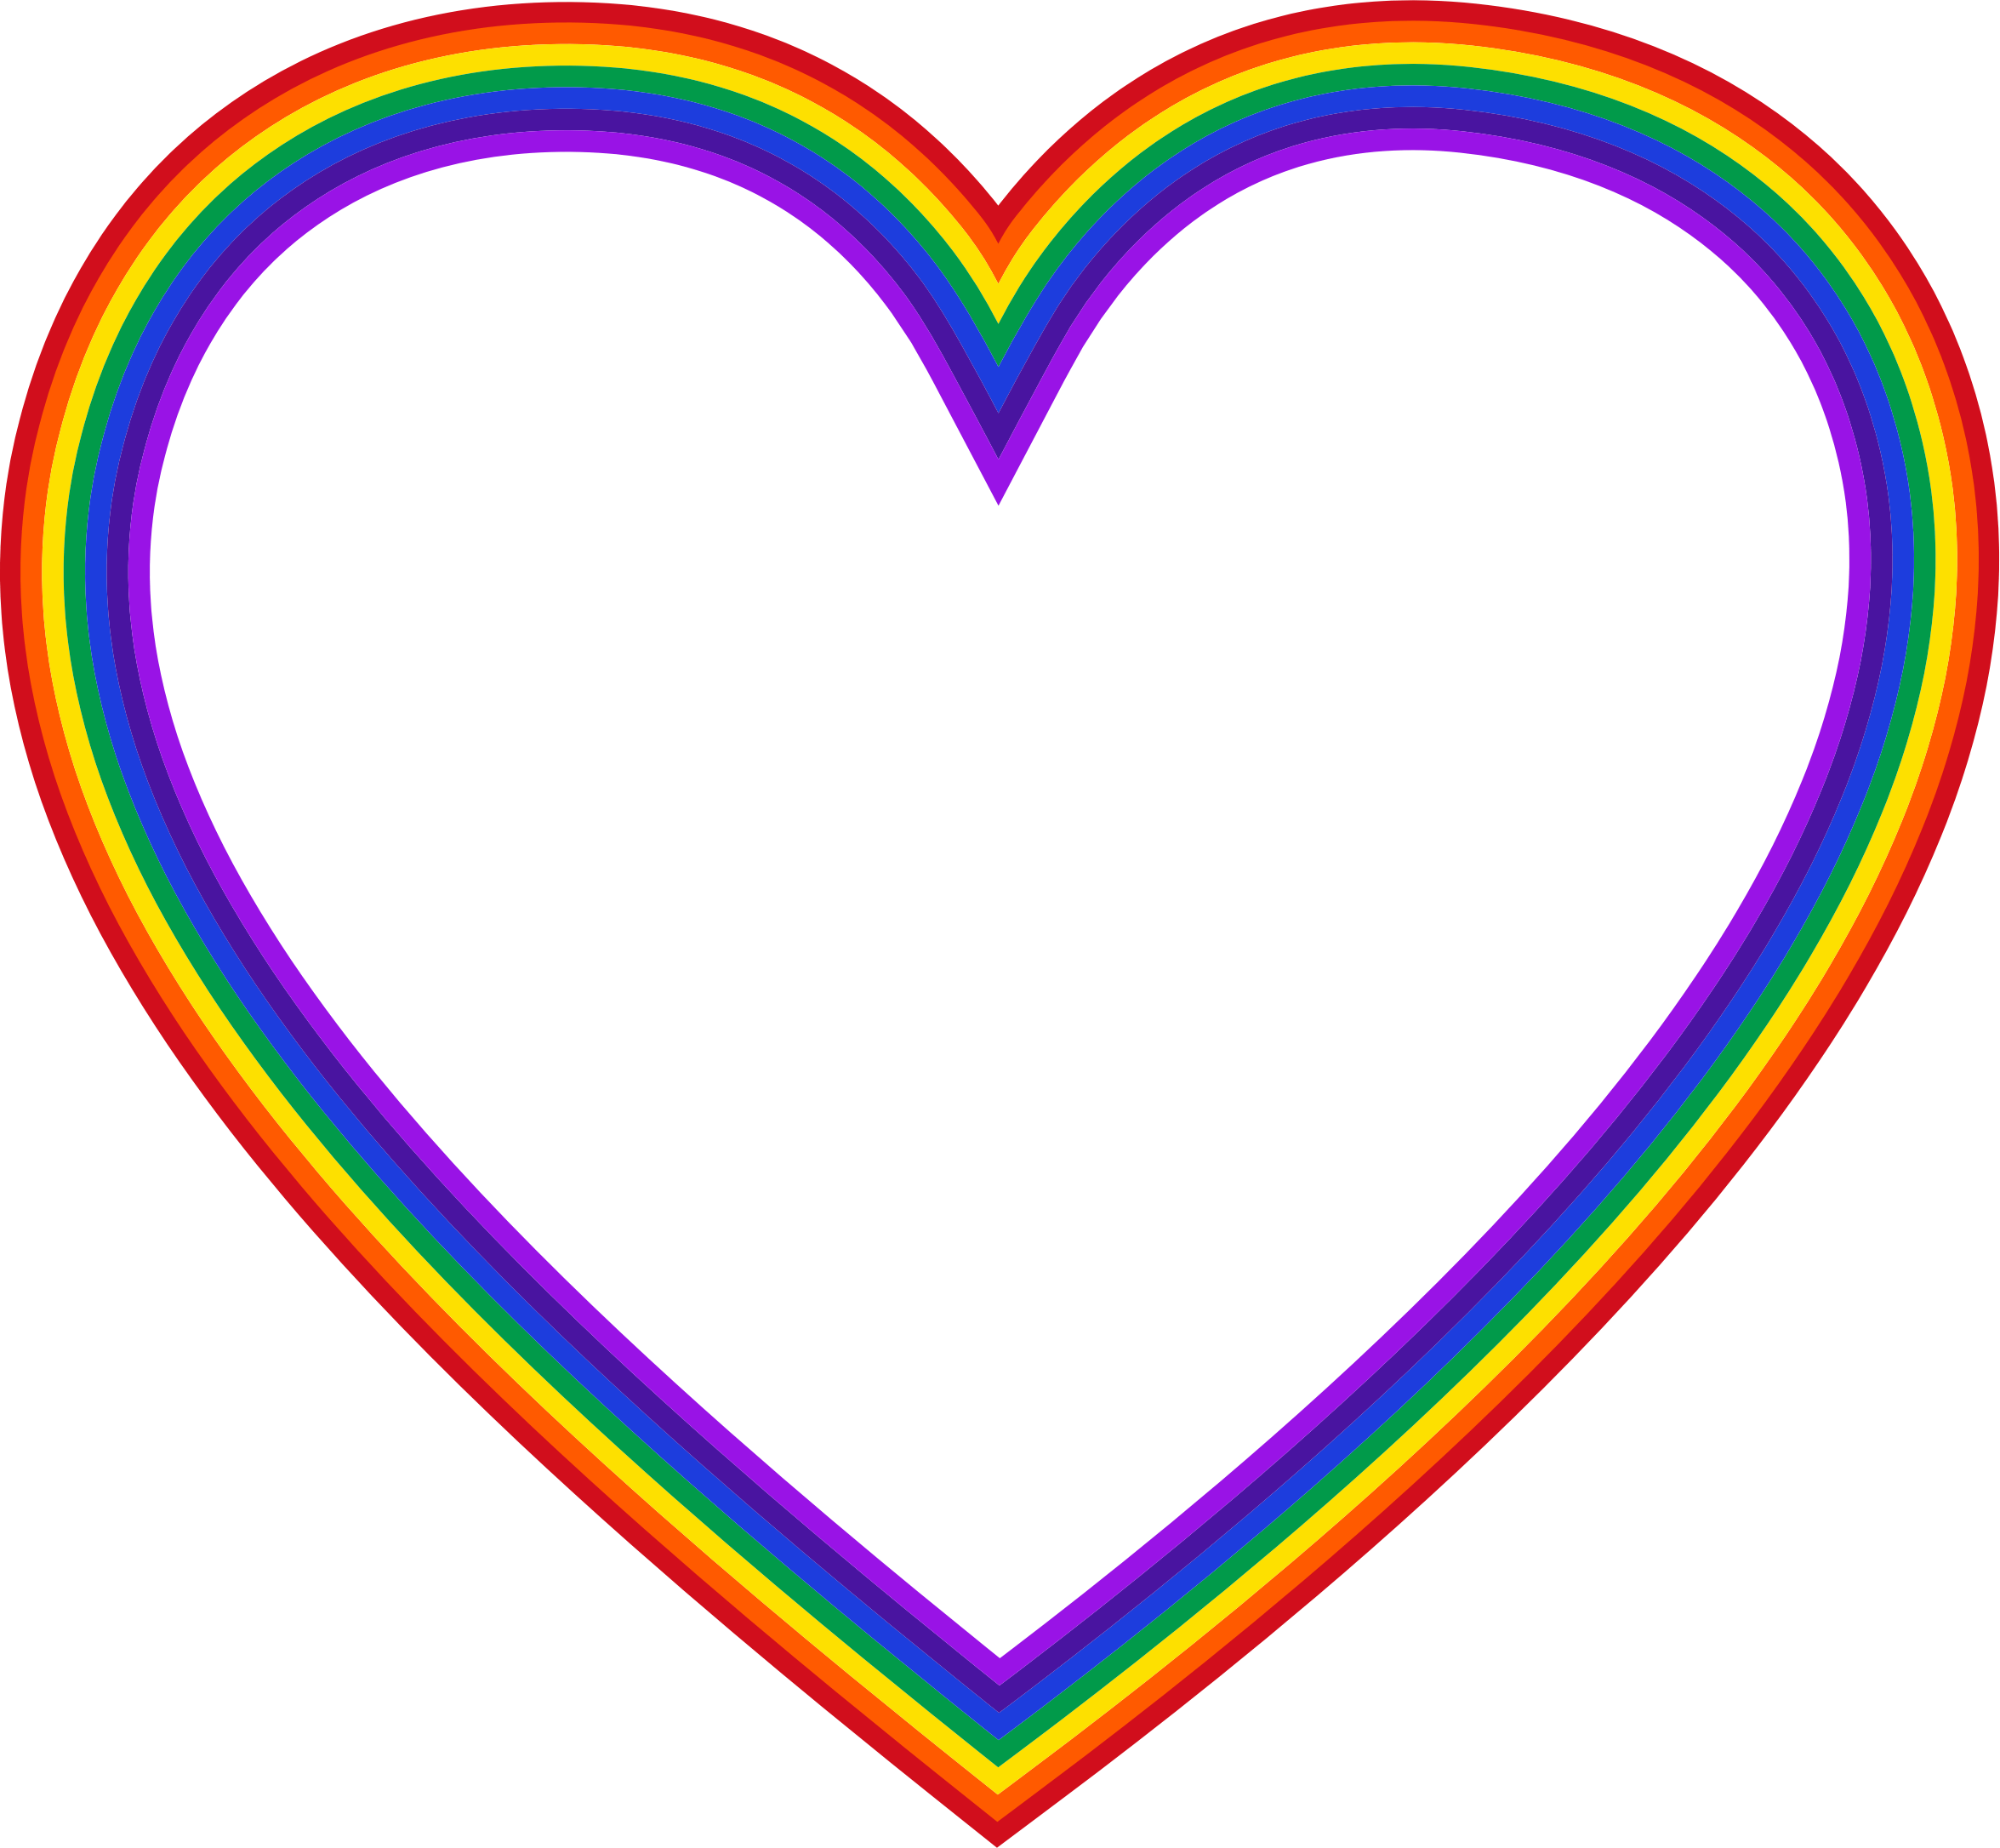 Rainbow Heart Backgrounds - Wallpaper Cave